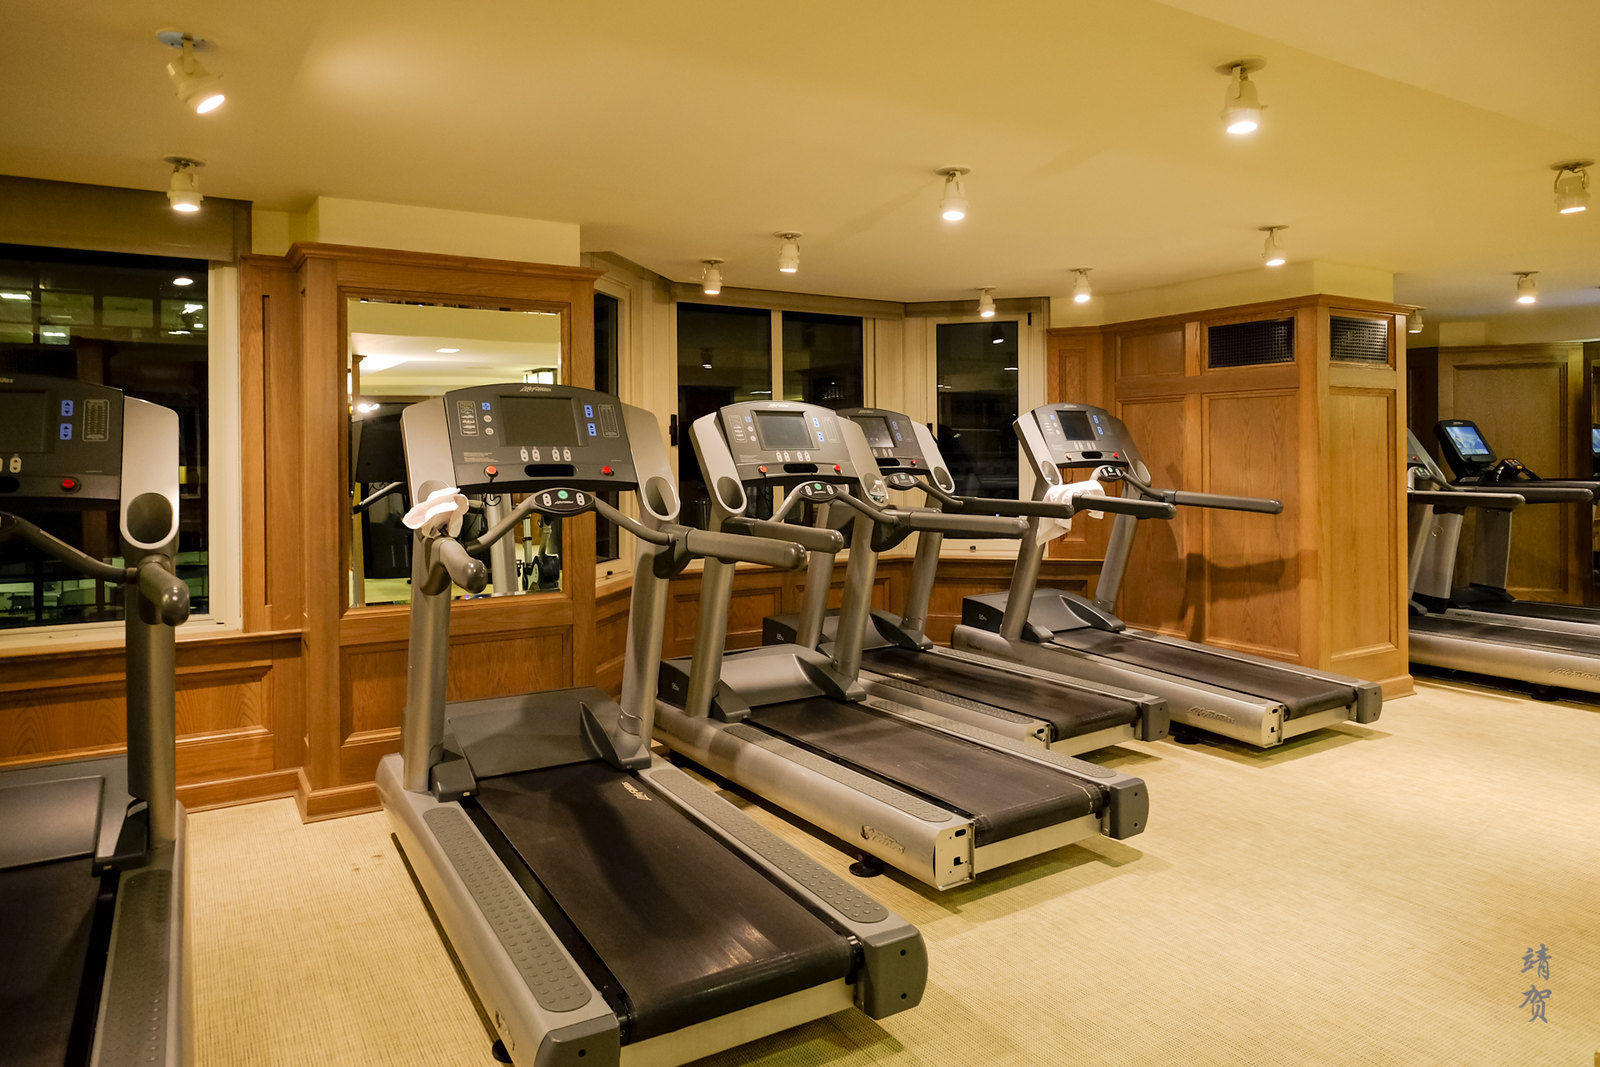 Treadmill in the fitness centre